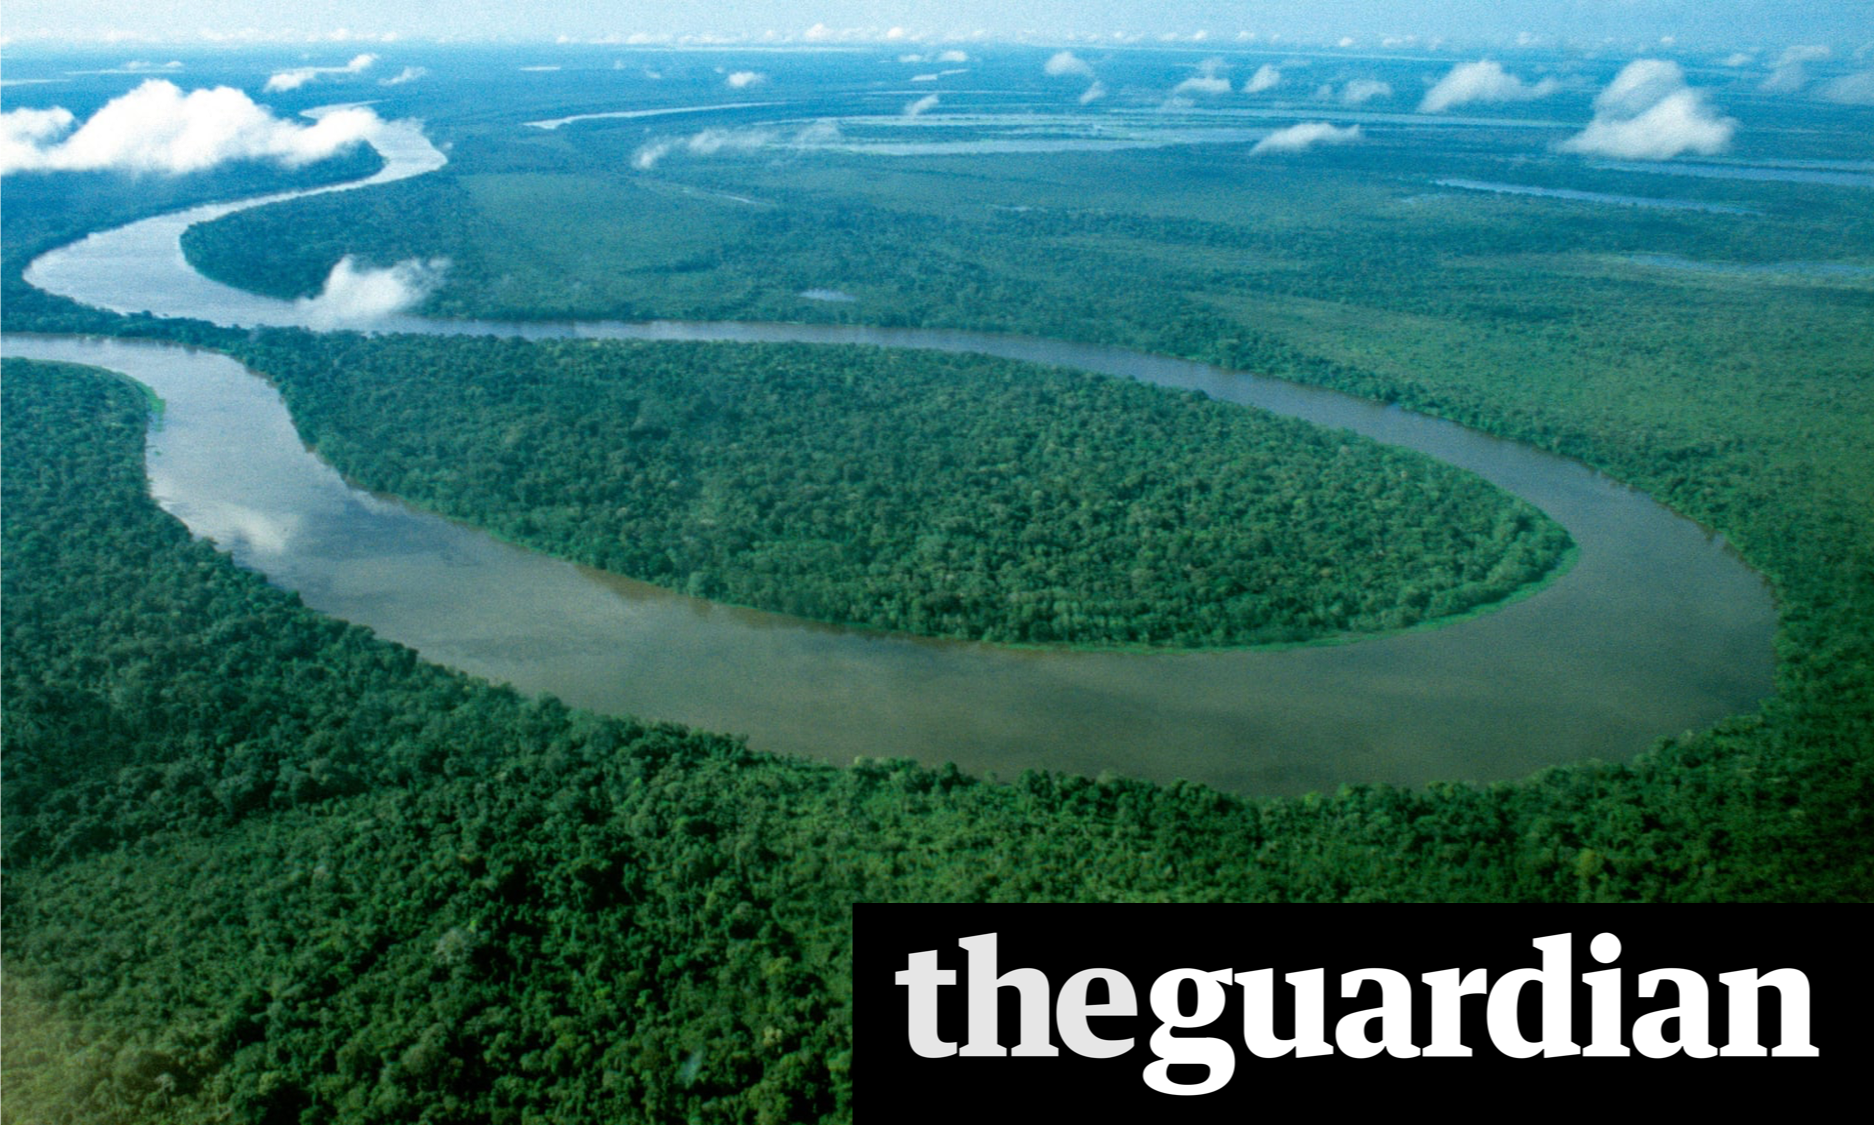 """SHELL BOSS SAYS MASS REFORESTATION NEEDED TO LIMIT TEMPERATURE RISES TO 1.5C."""